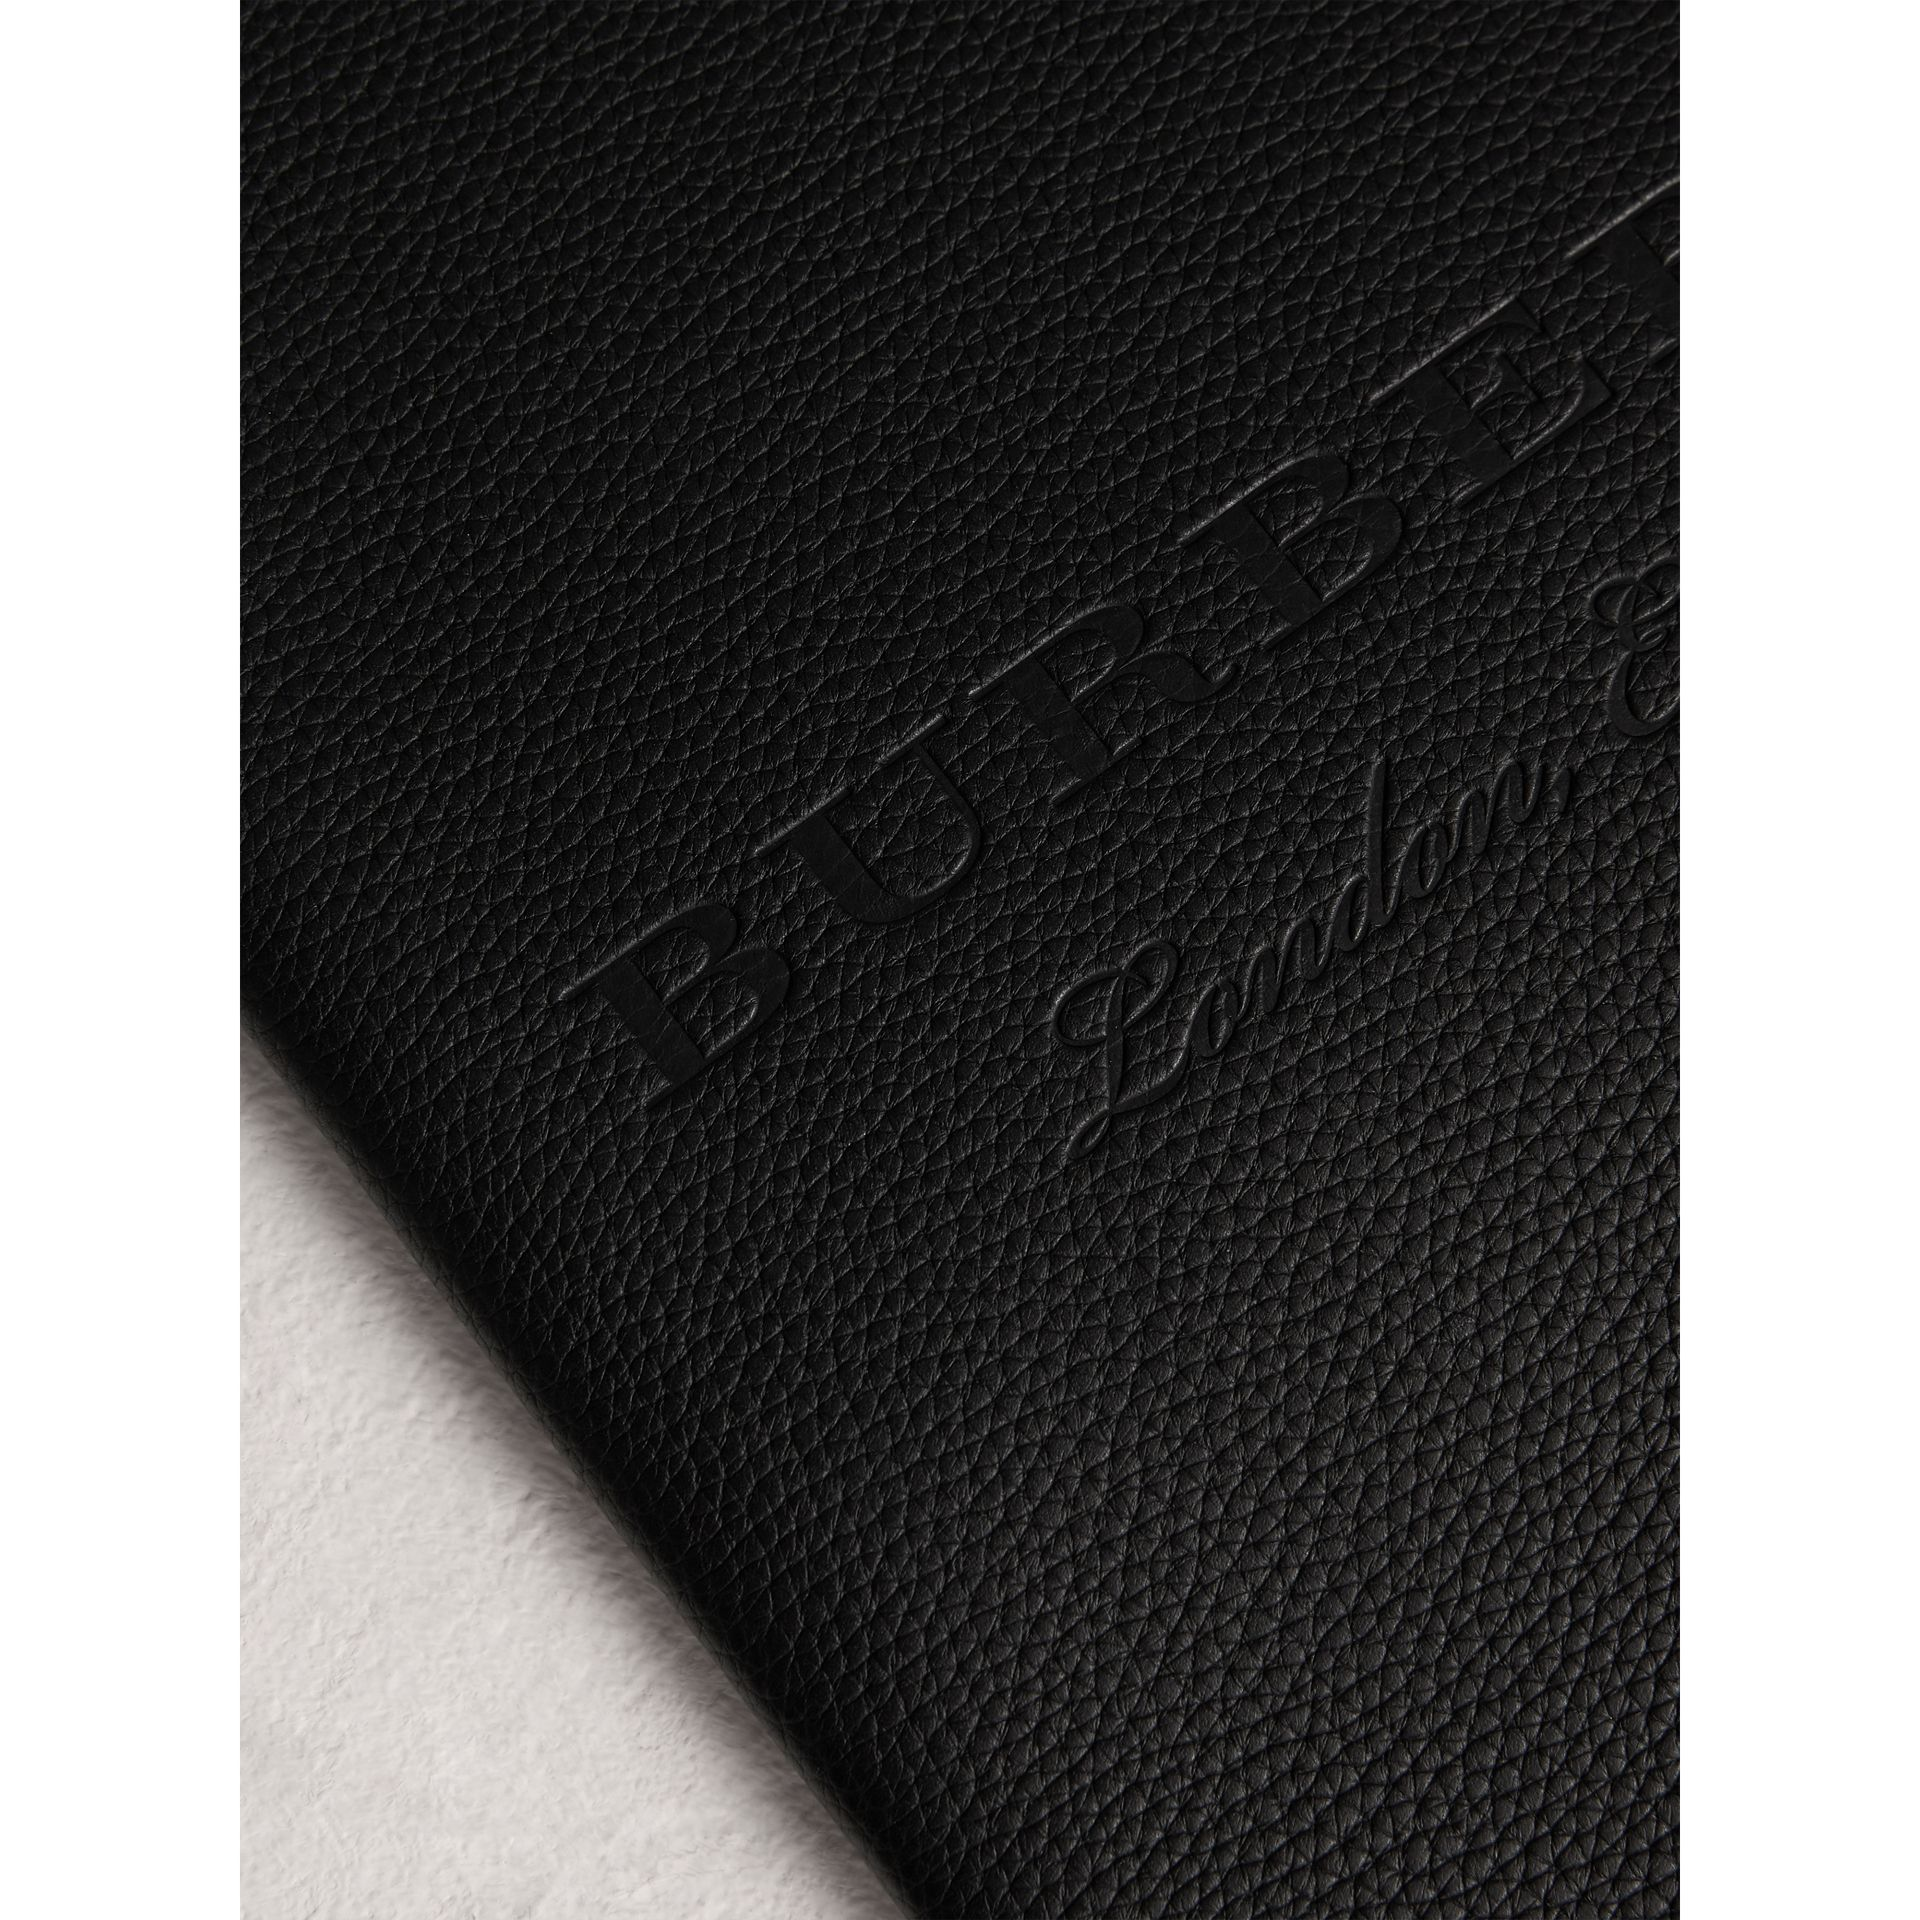 Embossed Grainy Leather Ziparound A4 Notebook Case in Black | Burberry Australia - gallery image 1